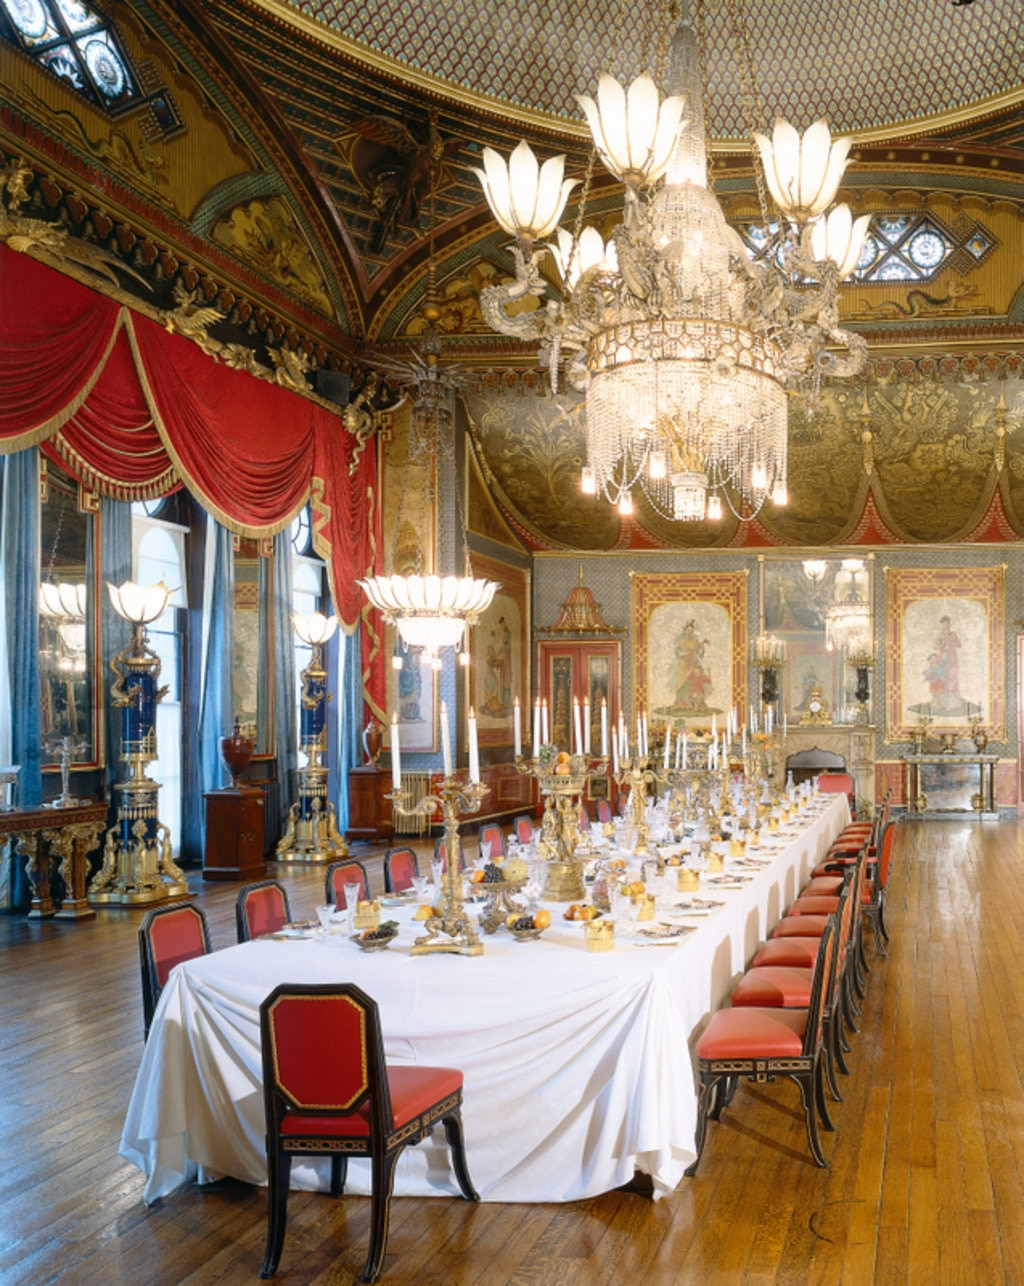 Banqueting Hall, Royal Pavilion